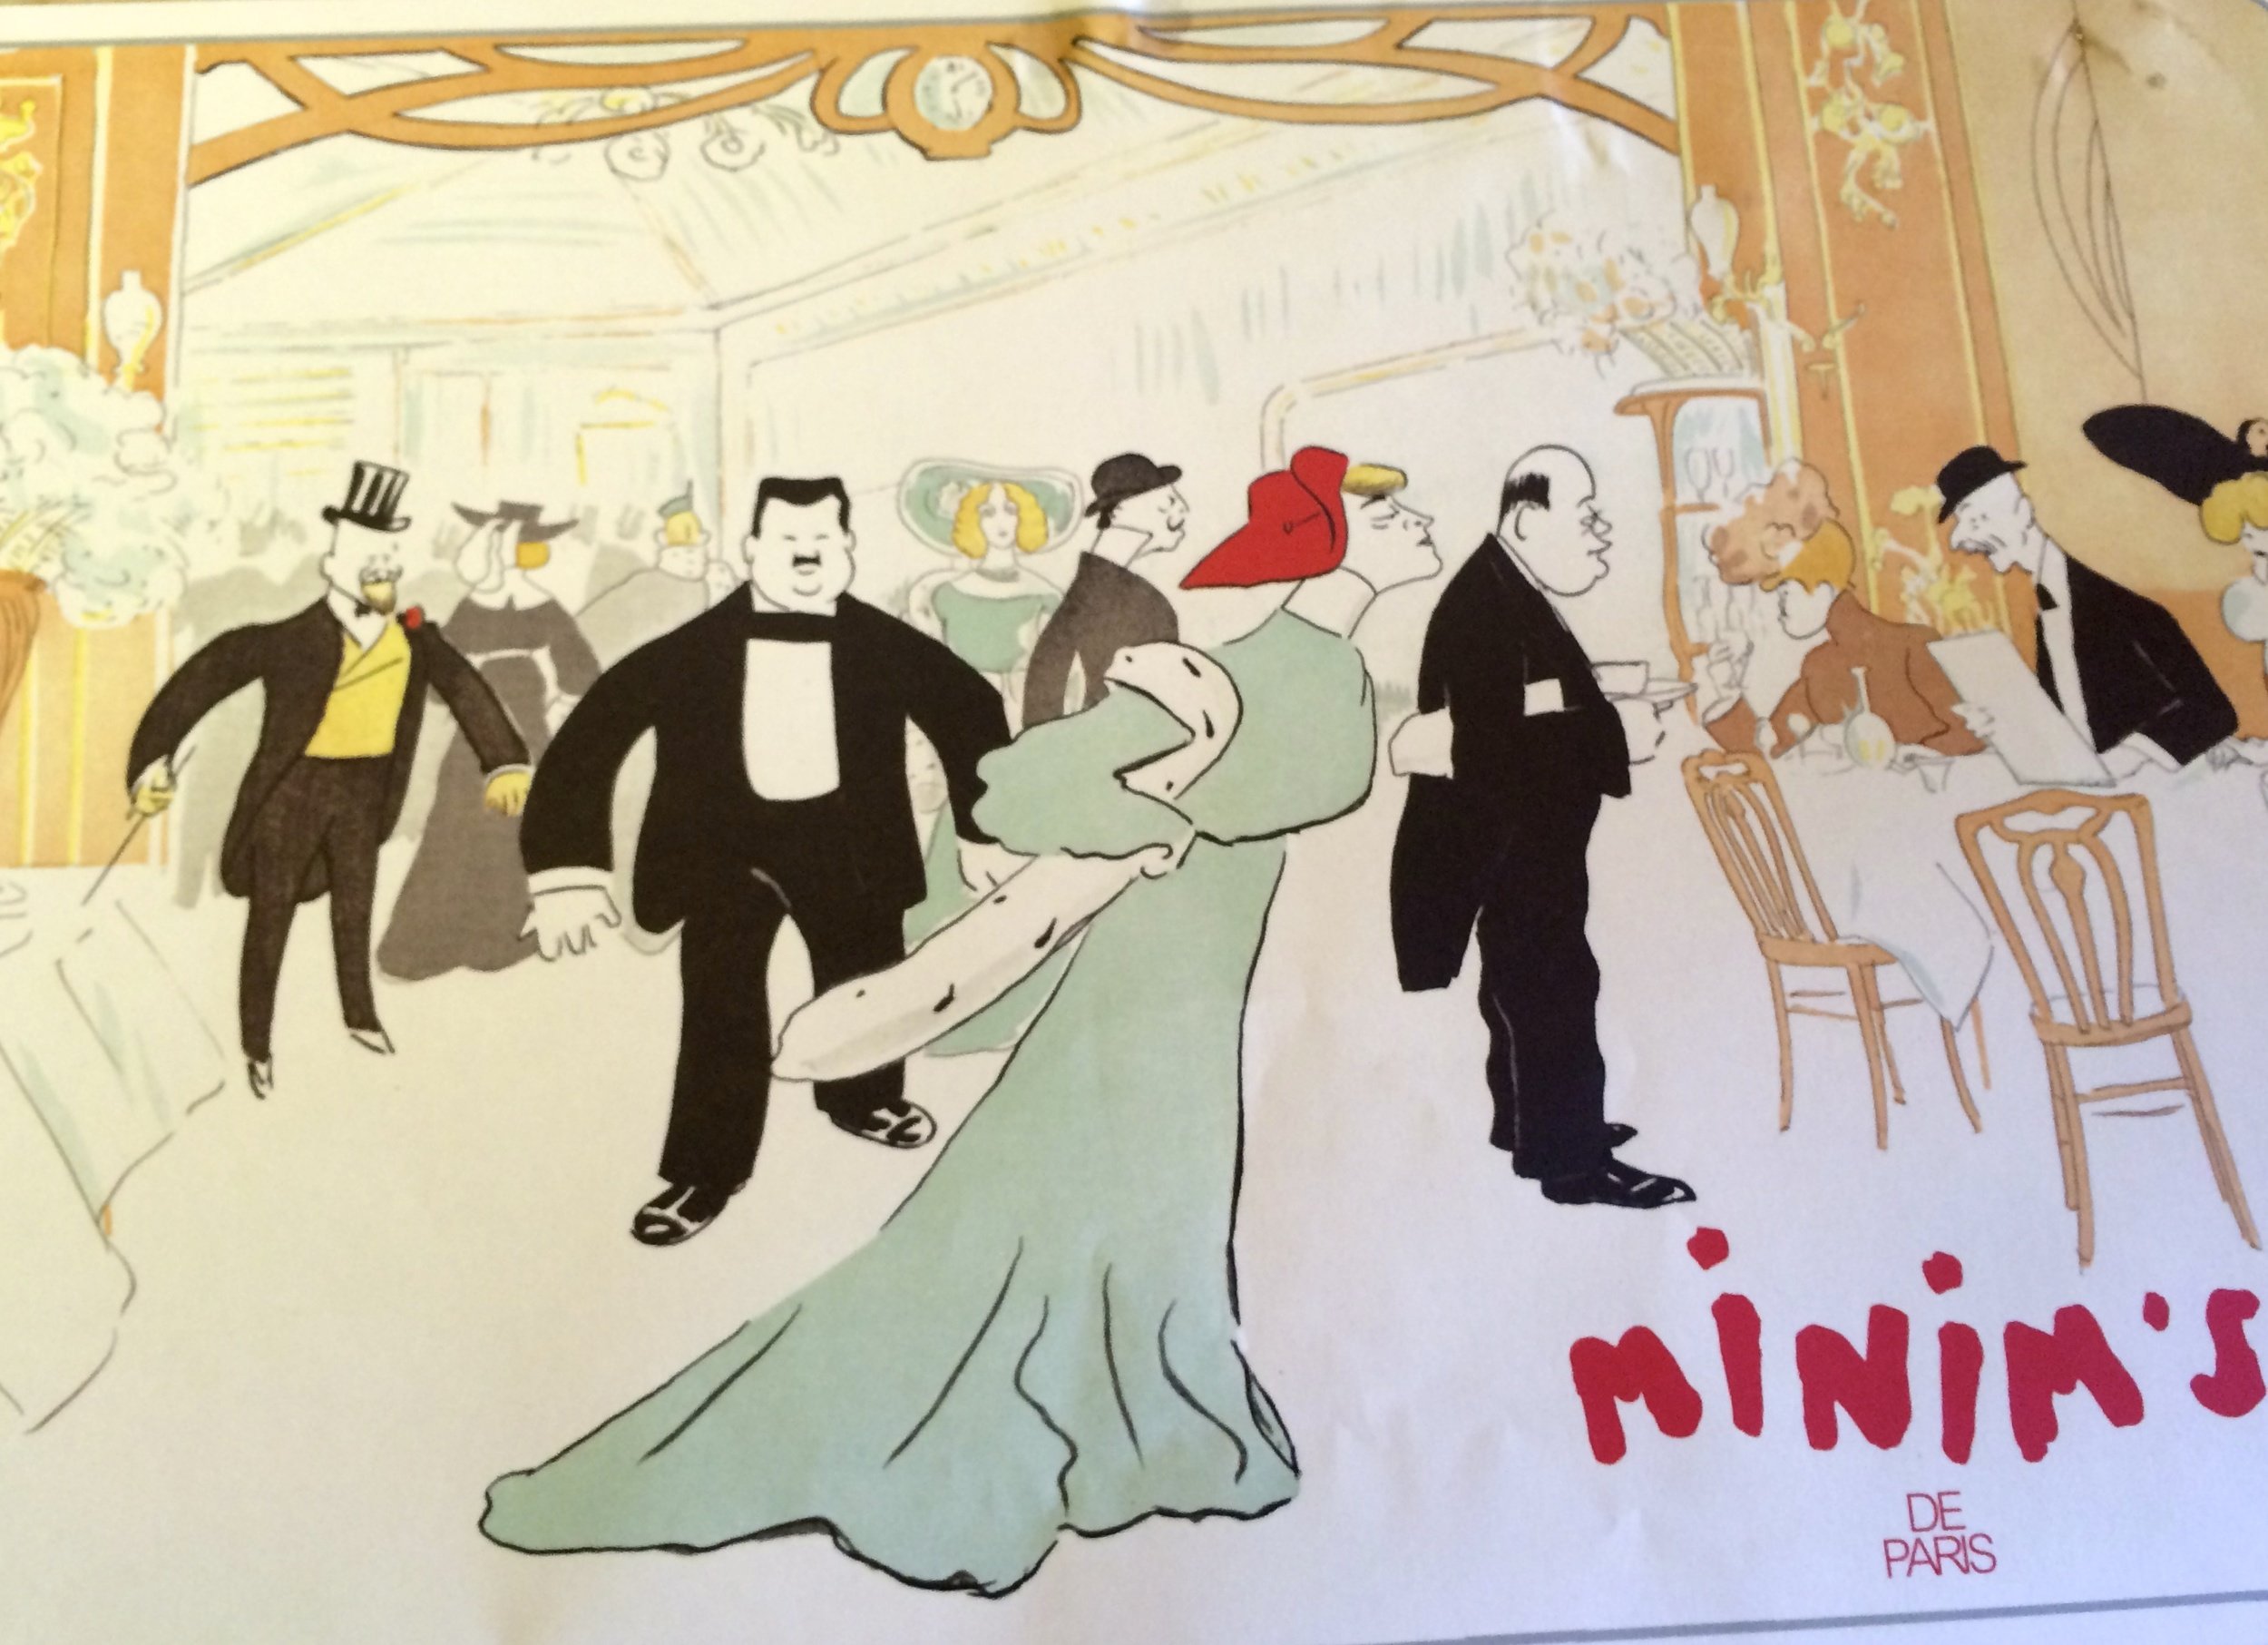 I think different experiences are important in keeping each of us stimulated, especially the brain. It also helps keep relationships fresh. It is not necessary to spend wads of money to have a good time. We had lunch at Minim's at Maxim's for a fraction of the cost.